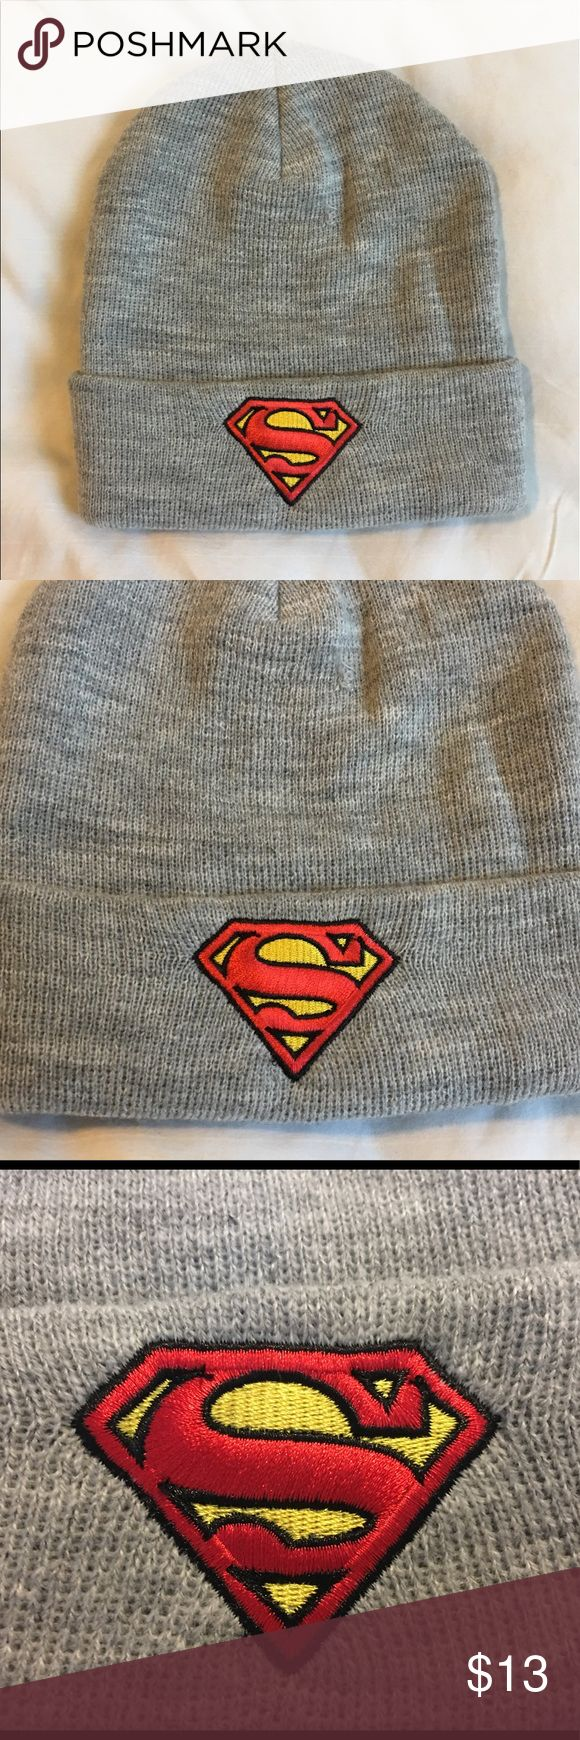 Dc comics Gray superman beanie Thank you for viewing my listing coming for sale is a men's, DC comics brand, gray, superman beanie. Item is used but in great condition. No rips or stains. If you have any questions or would like additional photos please feel free to ask. One size fits most DC Comics Accessories Hats